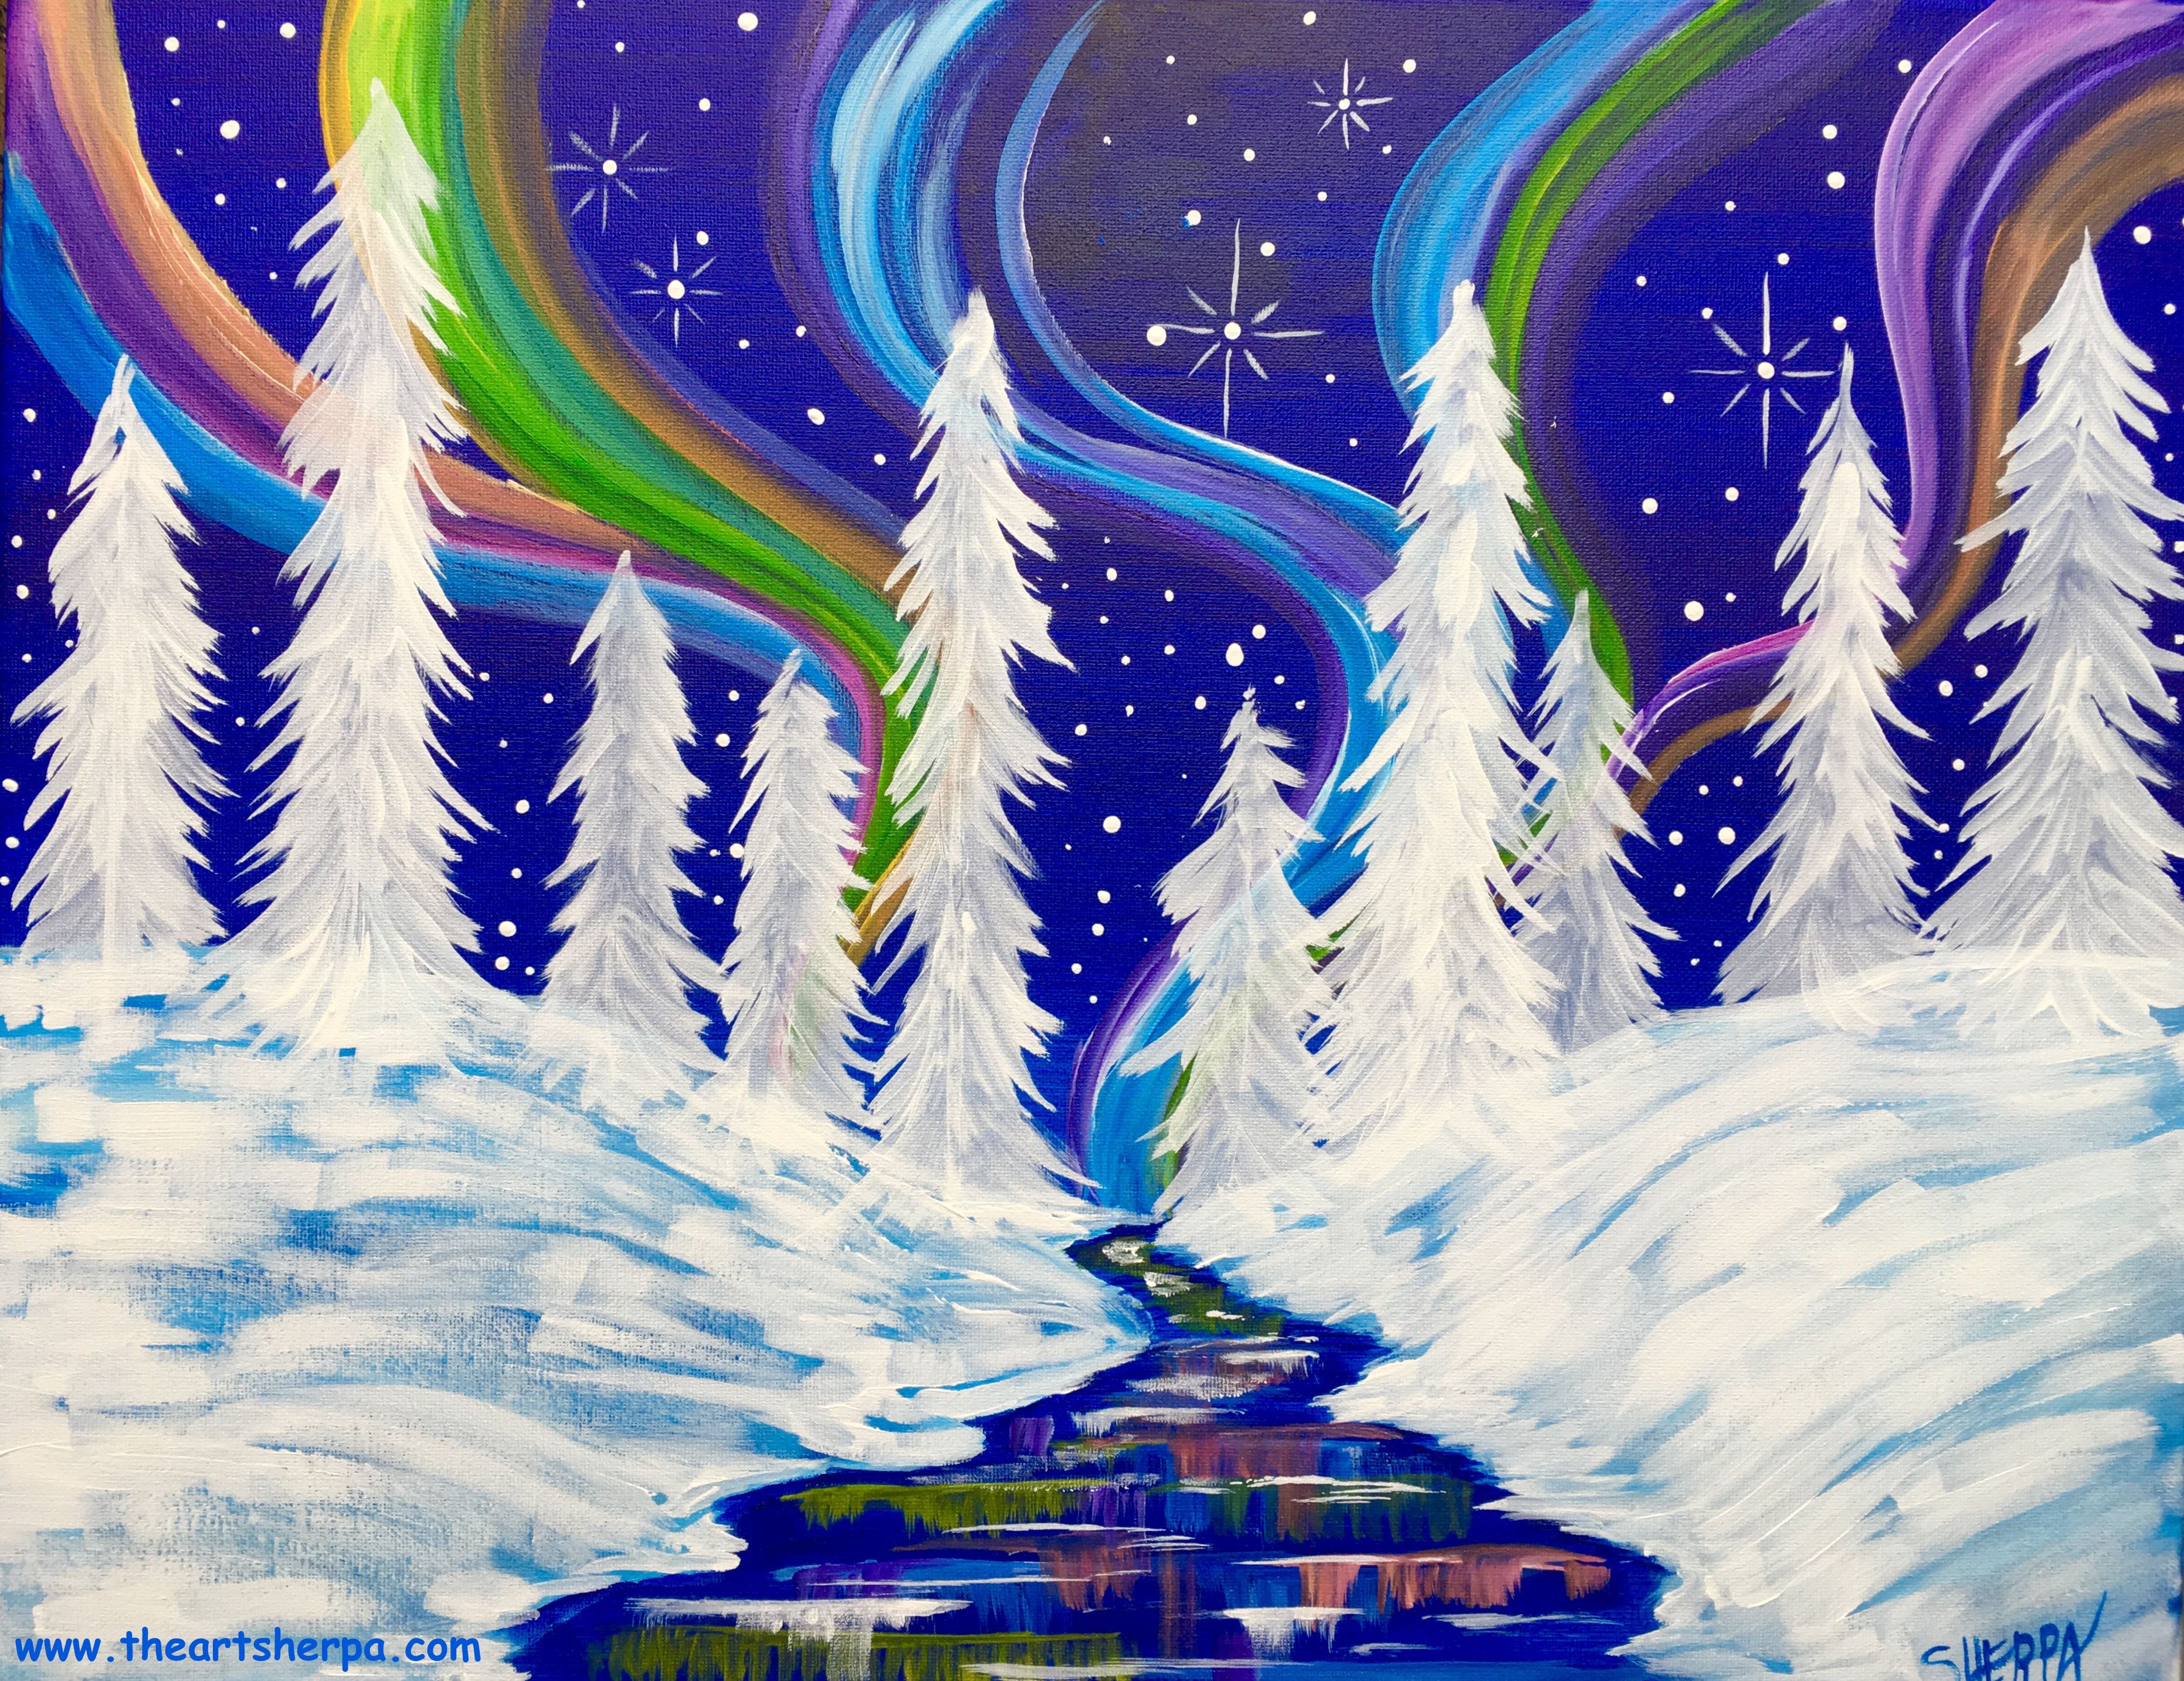 Aurora Borealis Winter Wonderland Landscape Easy Canvas Painting Tutorial on Youtube BY The Art Sherpa. Oct 29th 2017